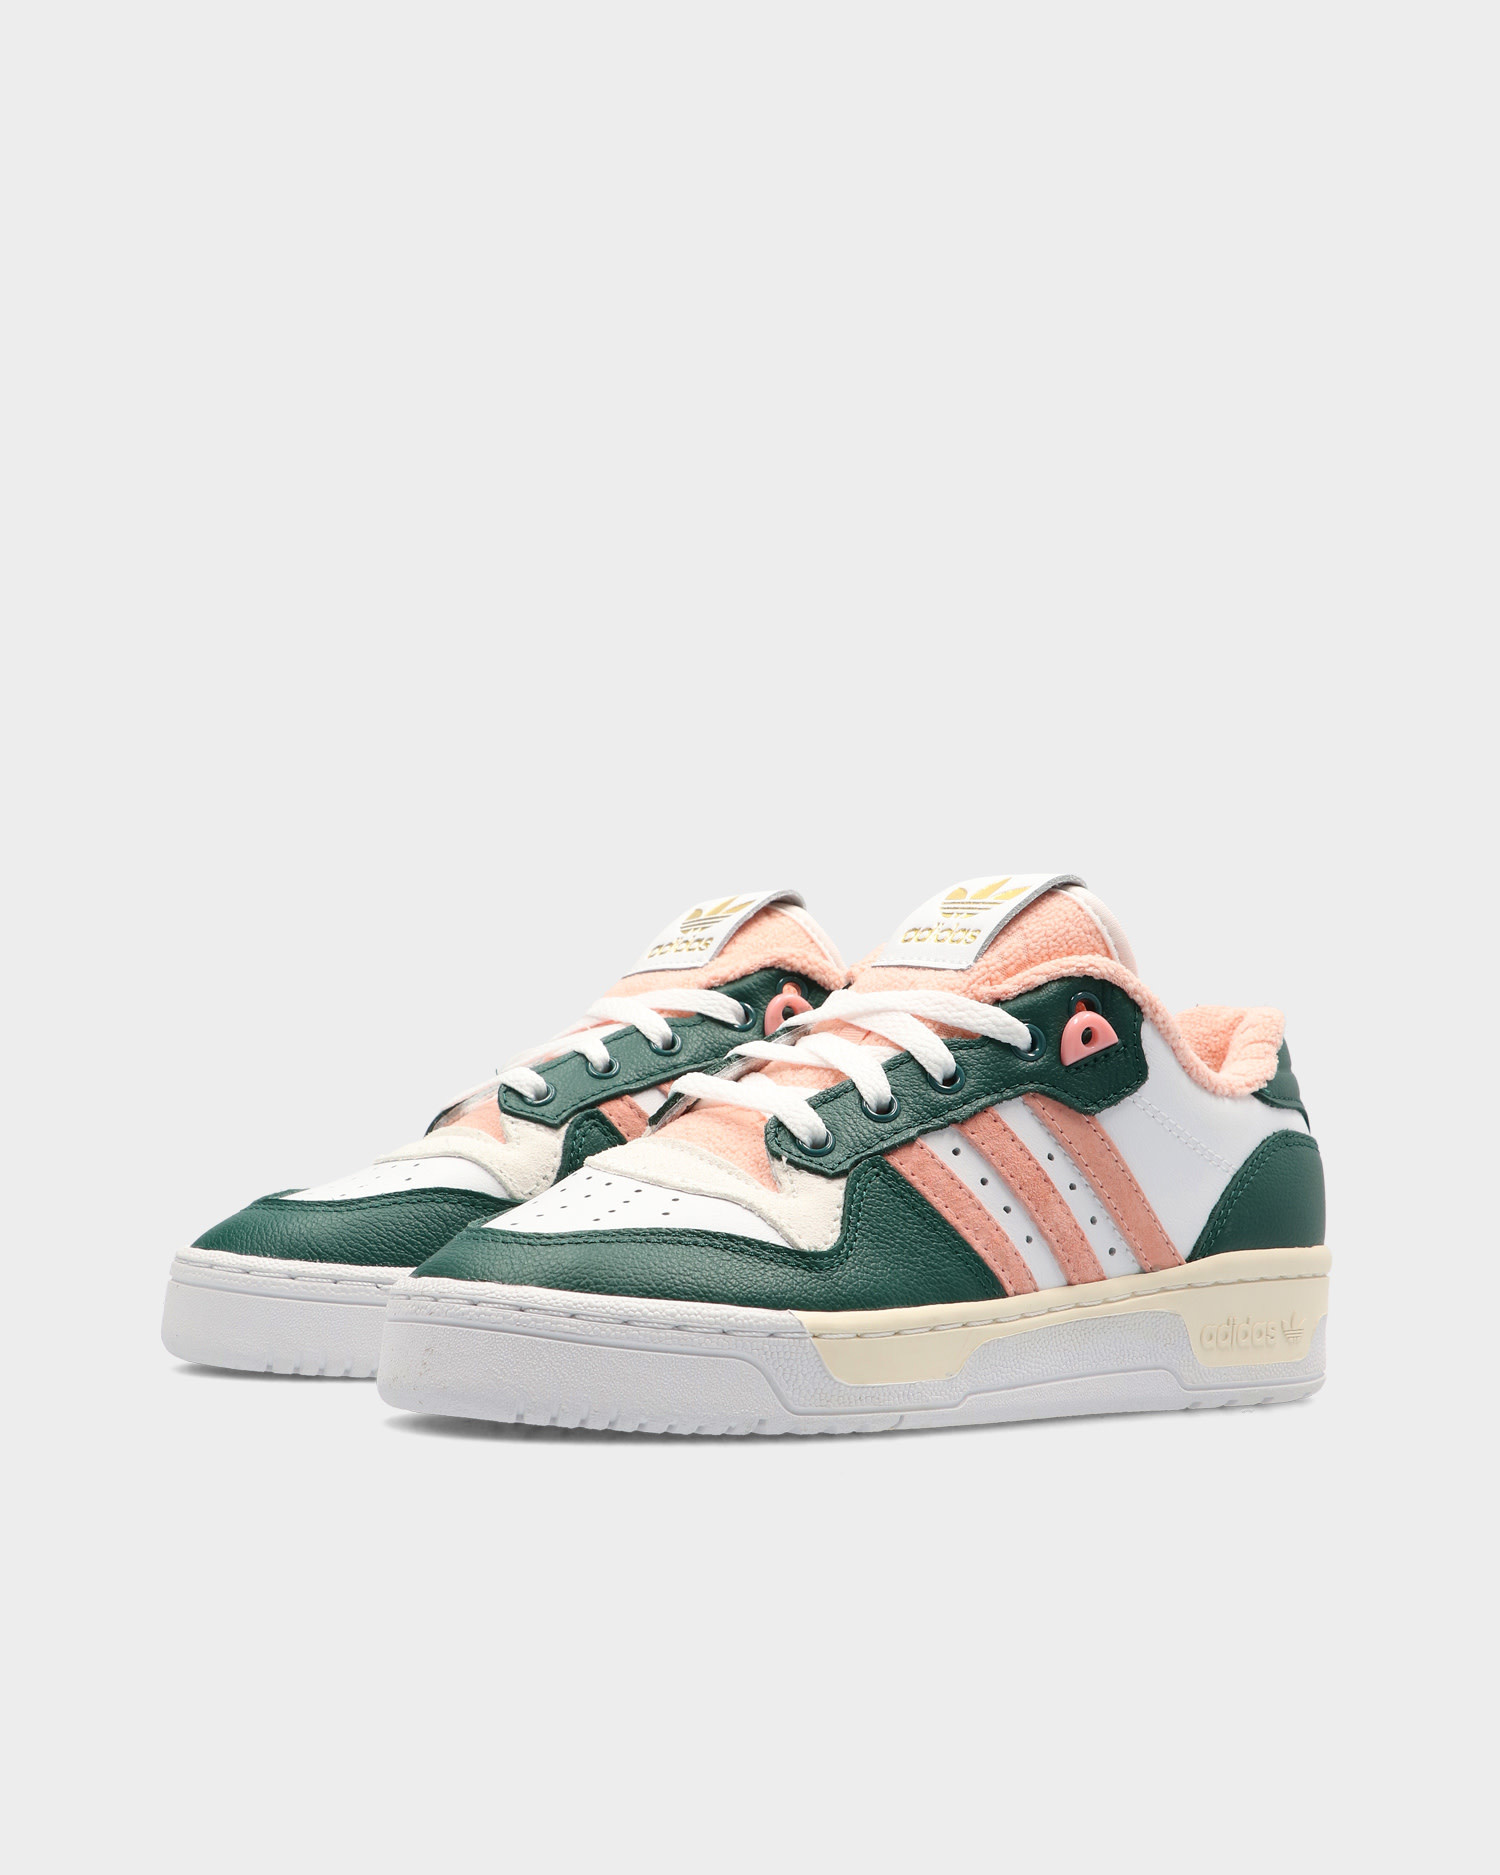 adidas Rivalry Low Premium Clear Green/Glow Pink/White